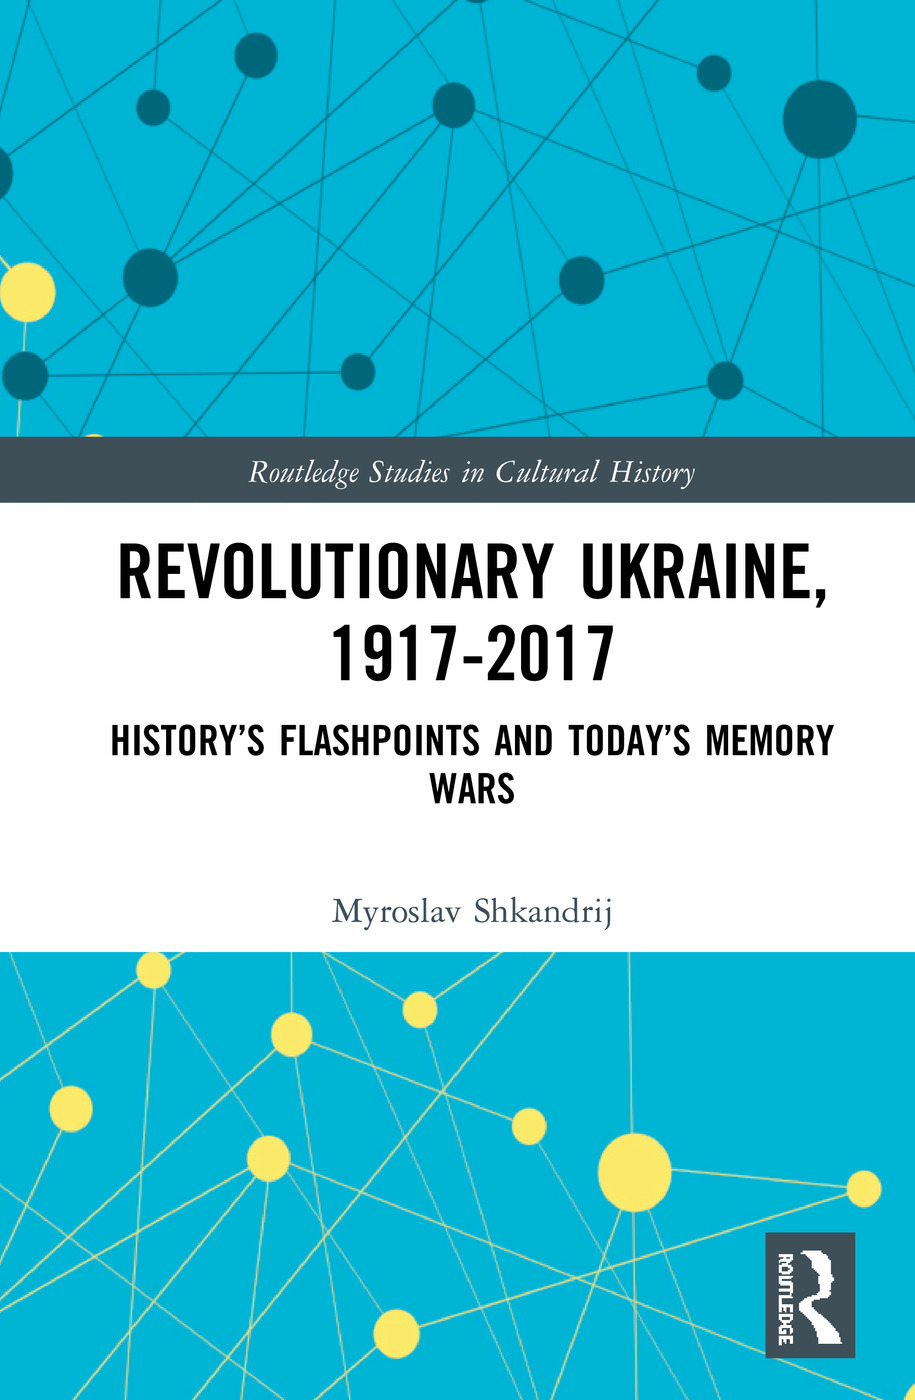 Revolutionary Ukraine, 1917-2017: History's Flashpoints and Today's Memory Wars book cover